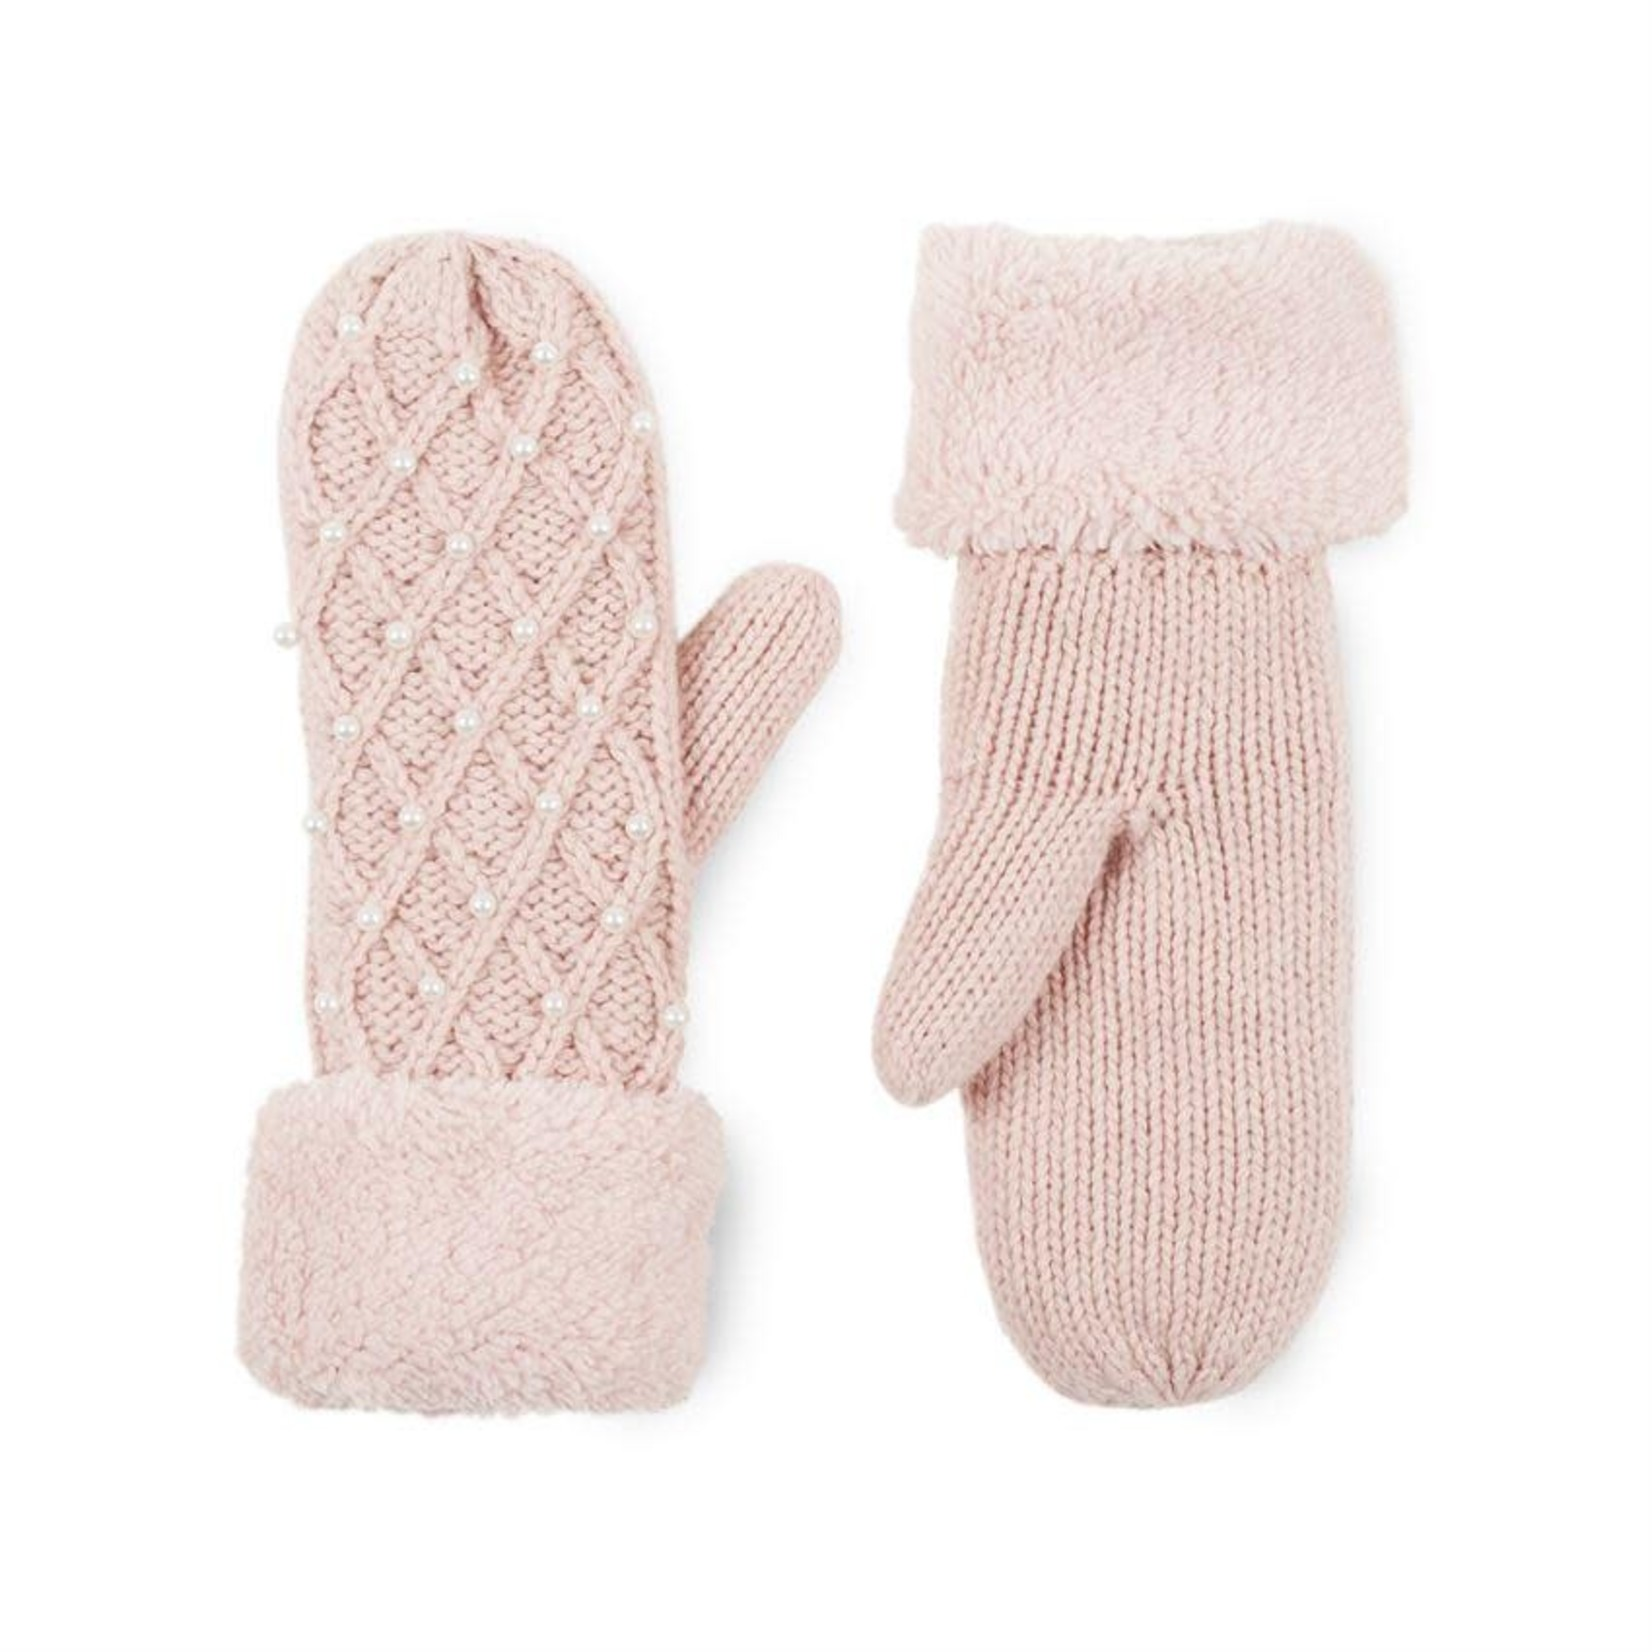 Pink Knitted Mittens w Fuzzy Trim and Pearl Detailing